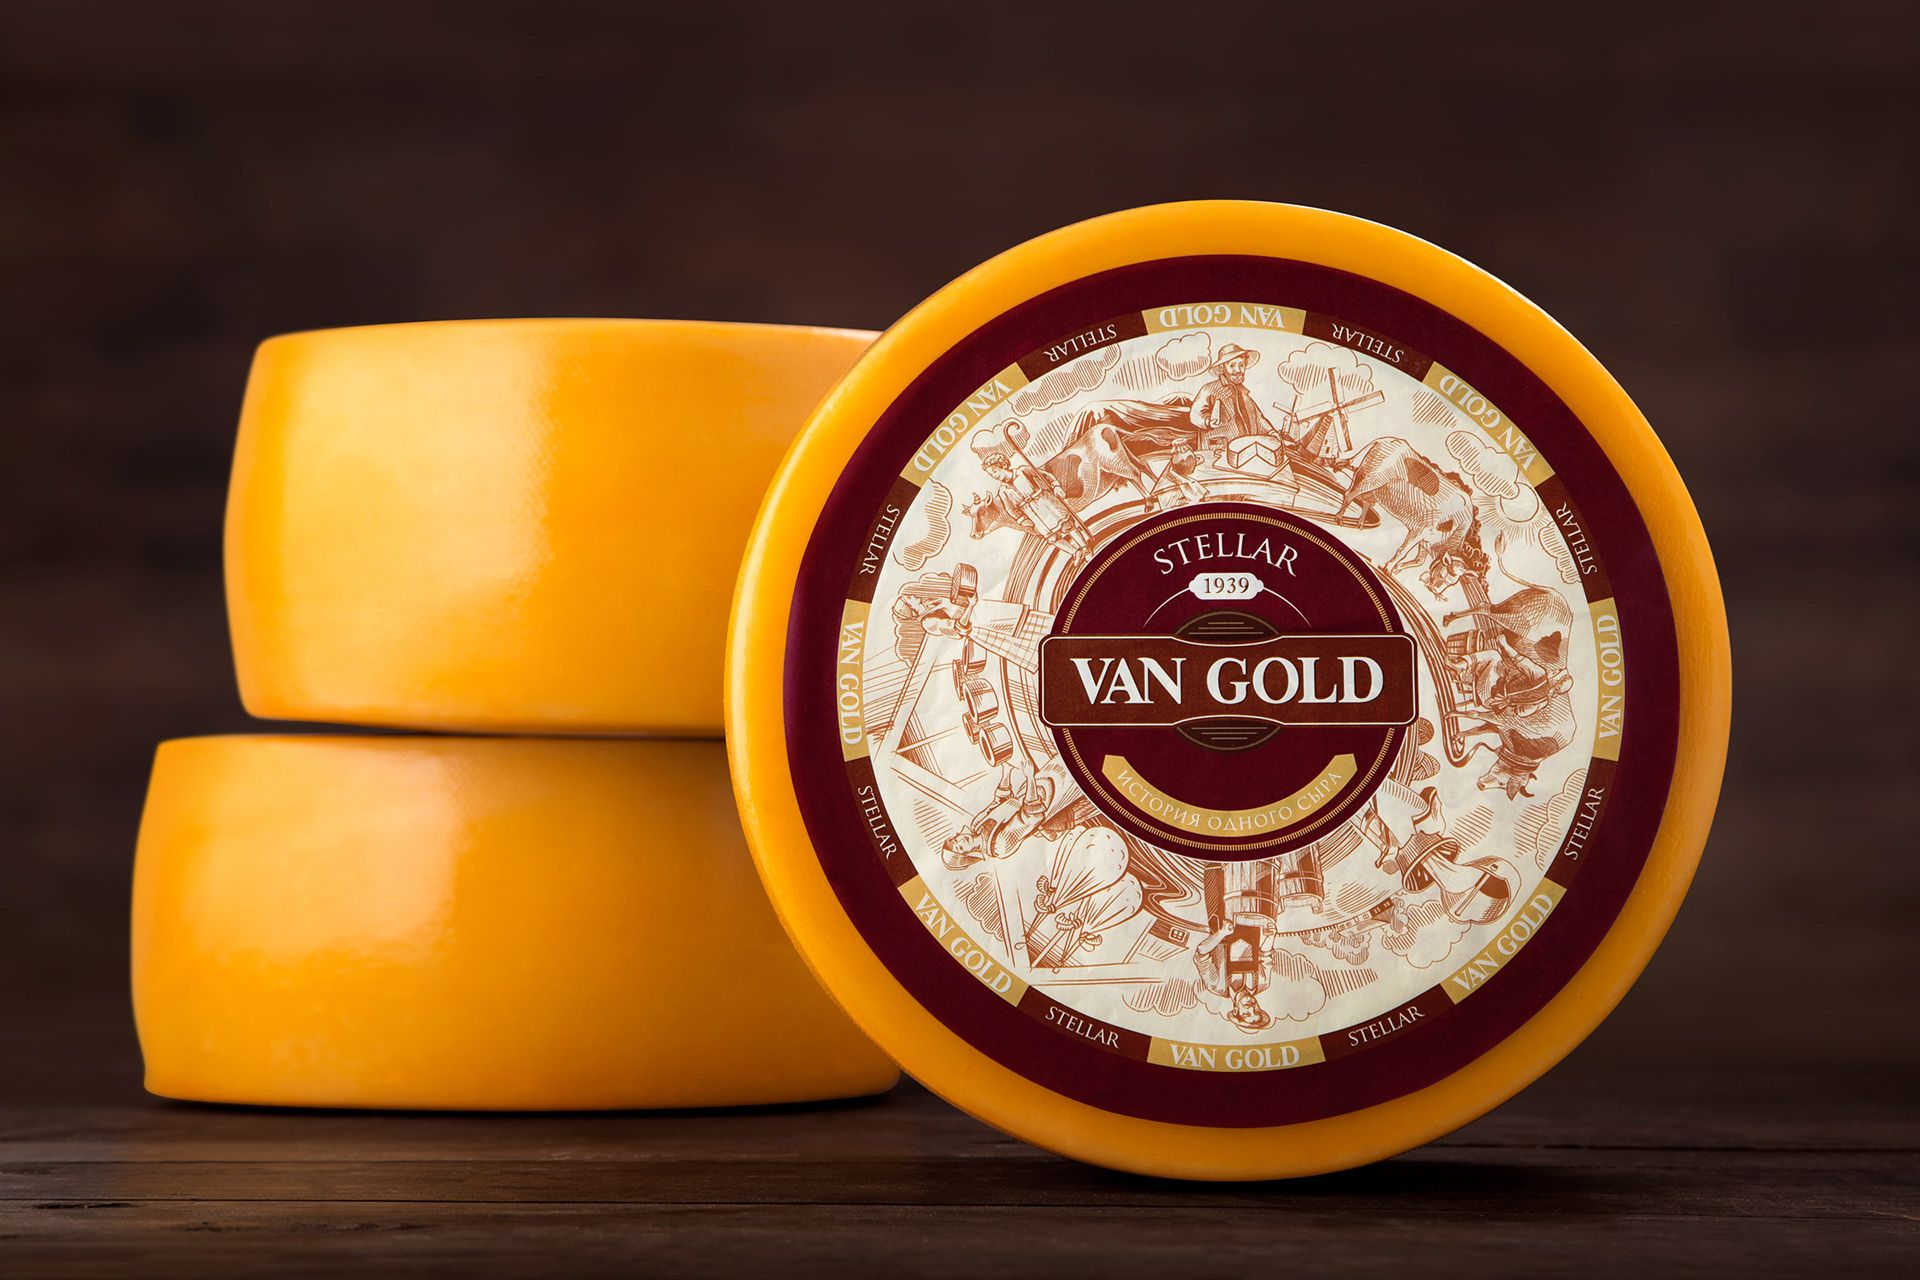 Van Gold Traditional European Cheeses From Belarus On Behance Cheese Packaging Cheese Brands Packaging Design